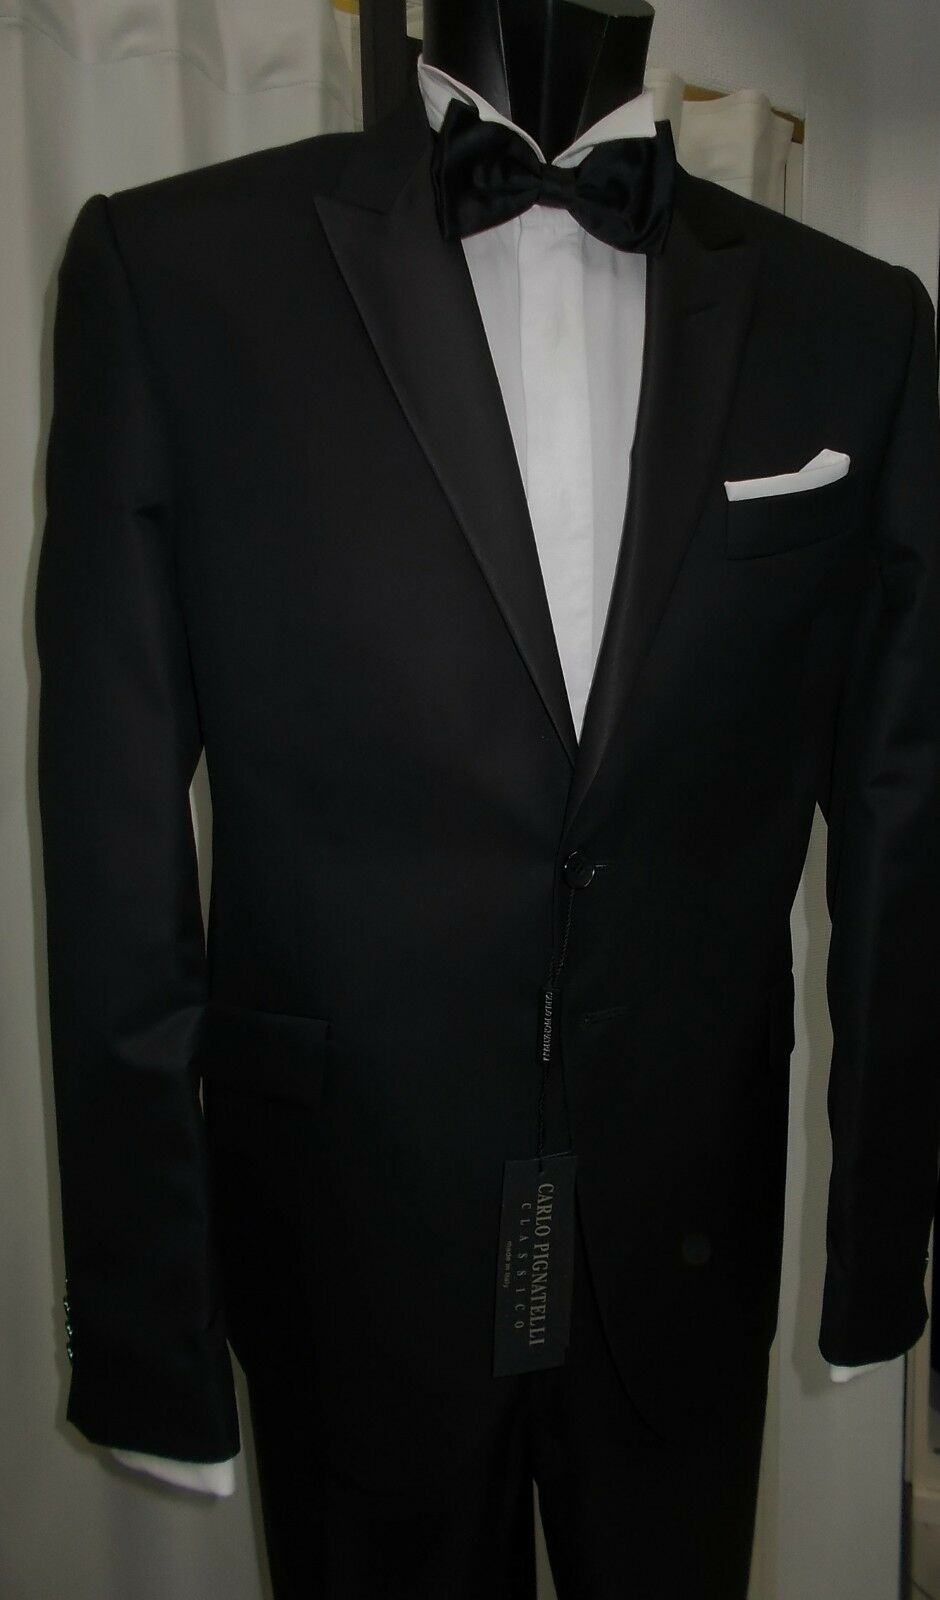 SMOKING UOMO FIRMATO CARLO PIGNATELLI T.50 ABITO CERIMONIA TUXEDO  WEDDING  MAN